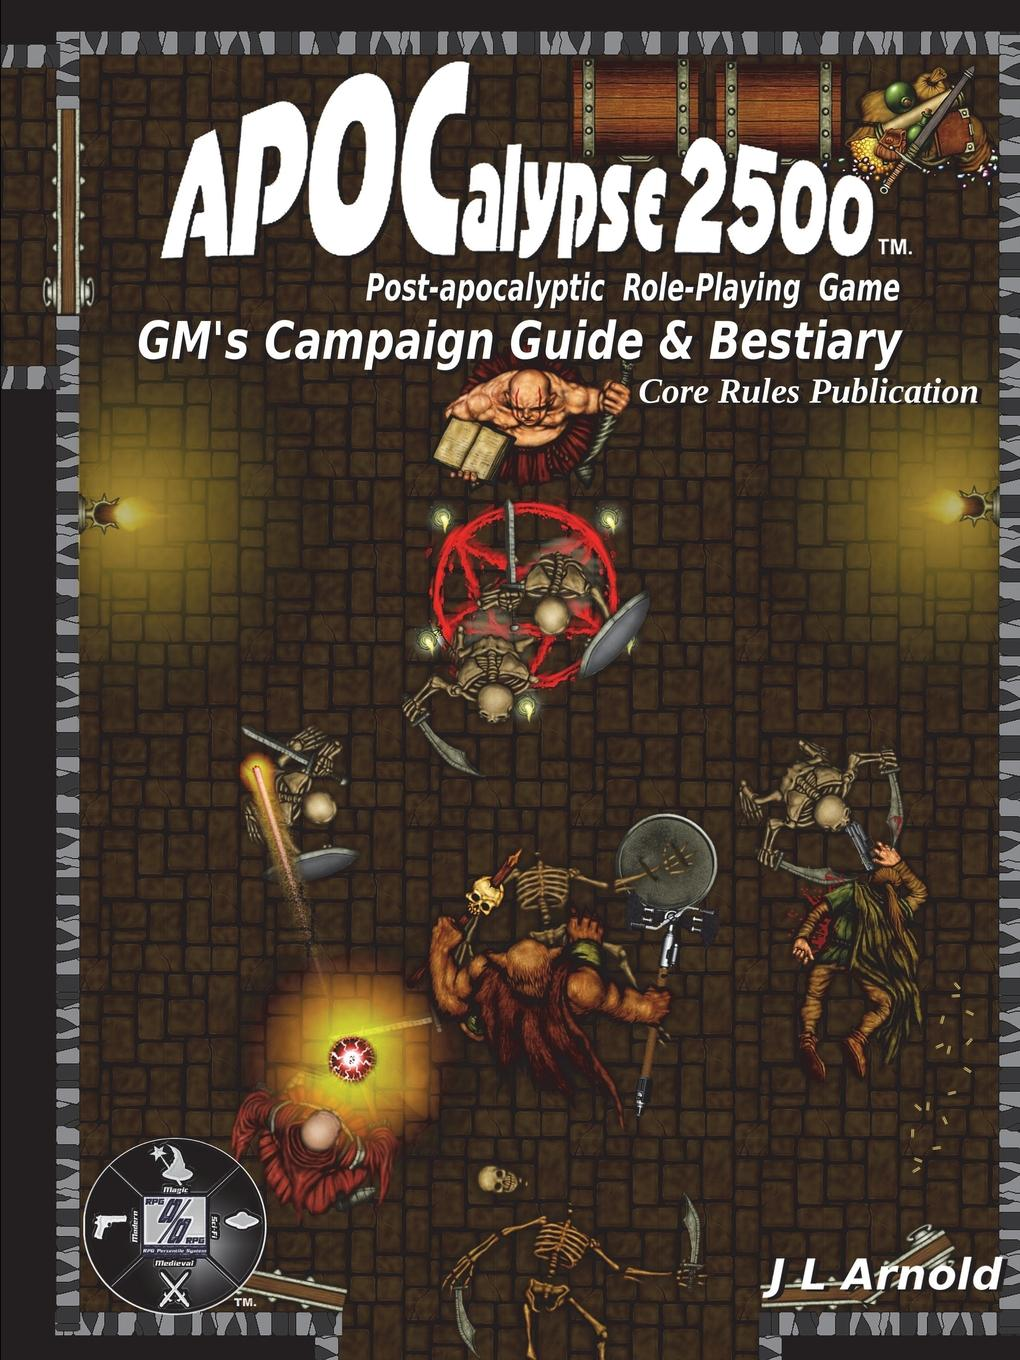 J L Arnold APOCalypse 2500 GMOs Campaign Guide . Bestiary game controller gamepad and trigger shooter aim key gaming assist tools kit